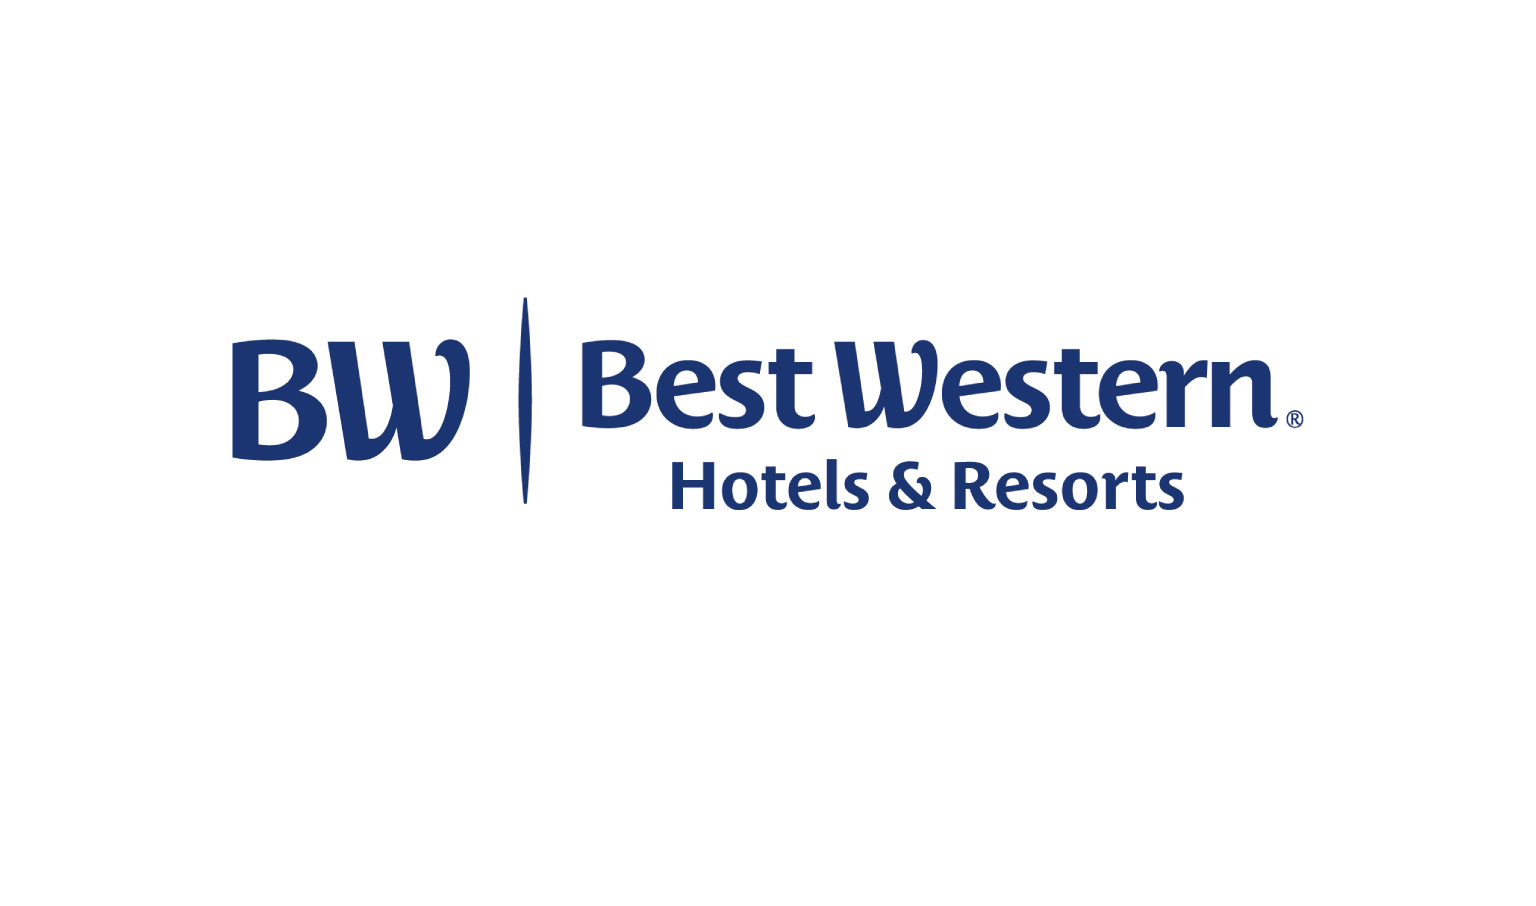 Logotype Best Western